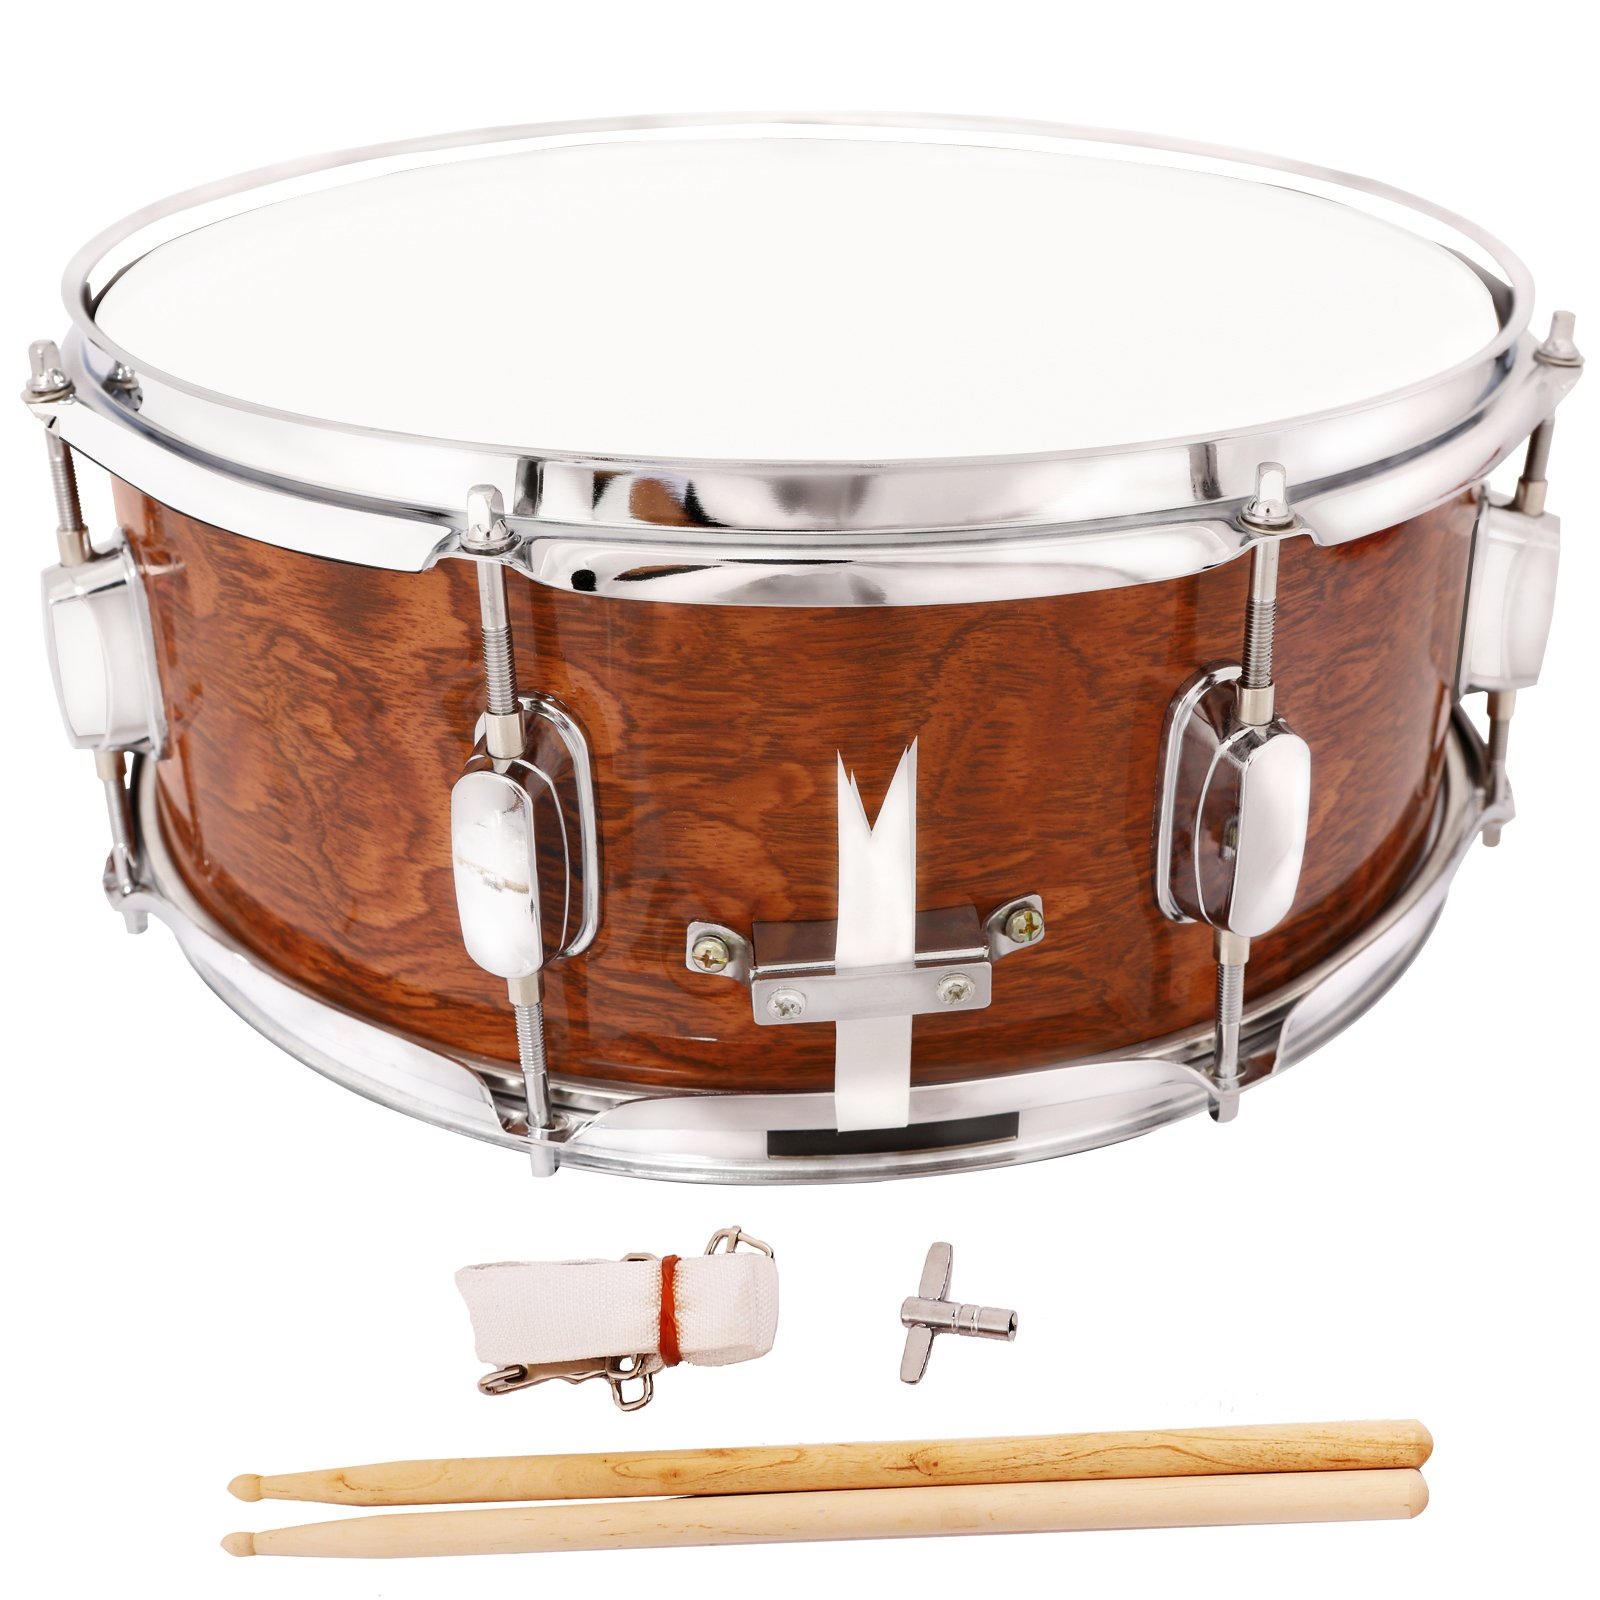 LAGRIMA Student Beginner Snare Drum W/Drum Key, Drumsticks and Strap|14x5.5 inch|Real Wood Shell|8 Metal Tuning Lugs